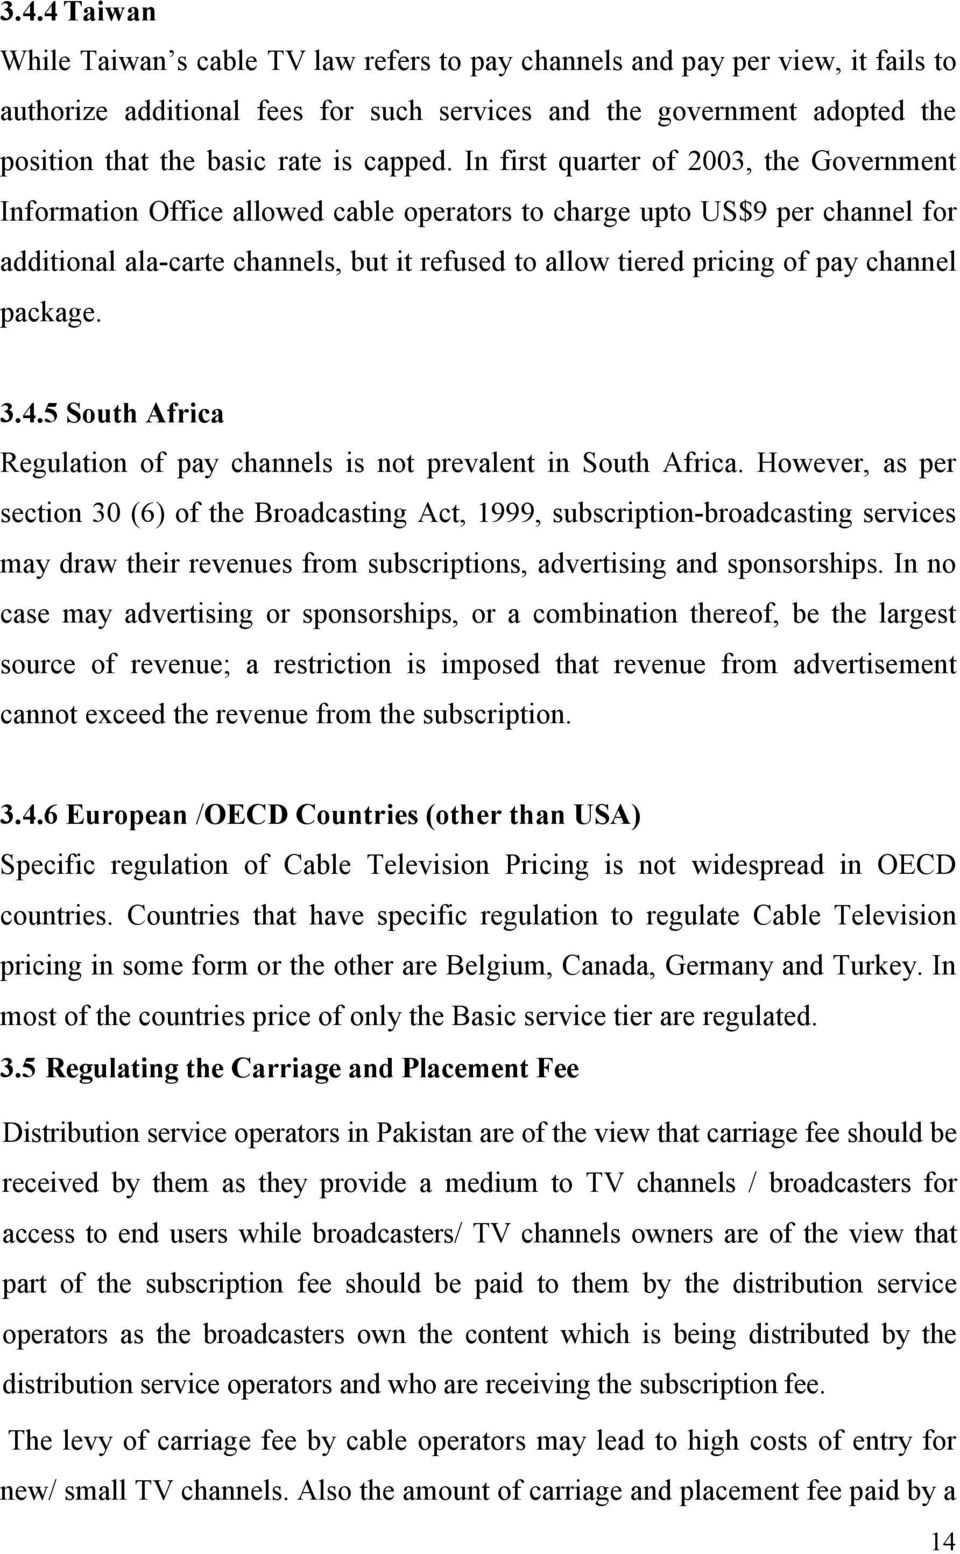 In first quarter of 2003, the Government Information Office allowed cable operators to charge upto US$9 per channel for additional ala-carte channels, but it refused to allow tiered pricing of pay